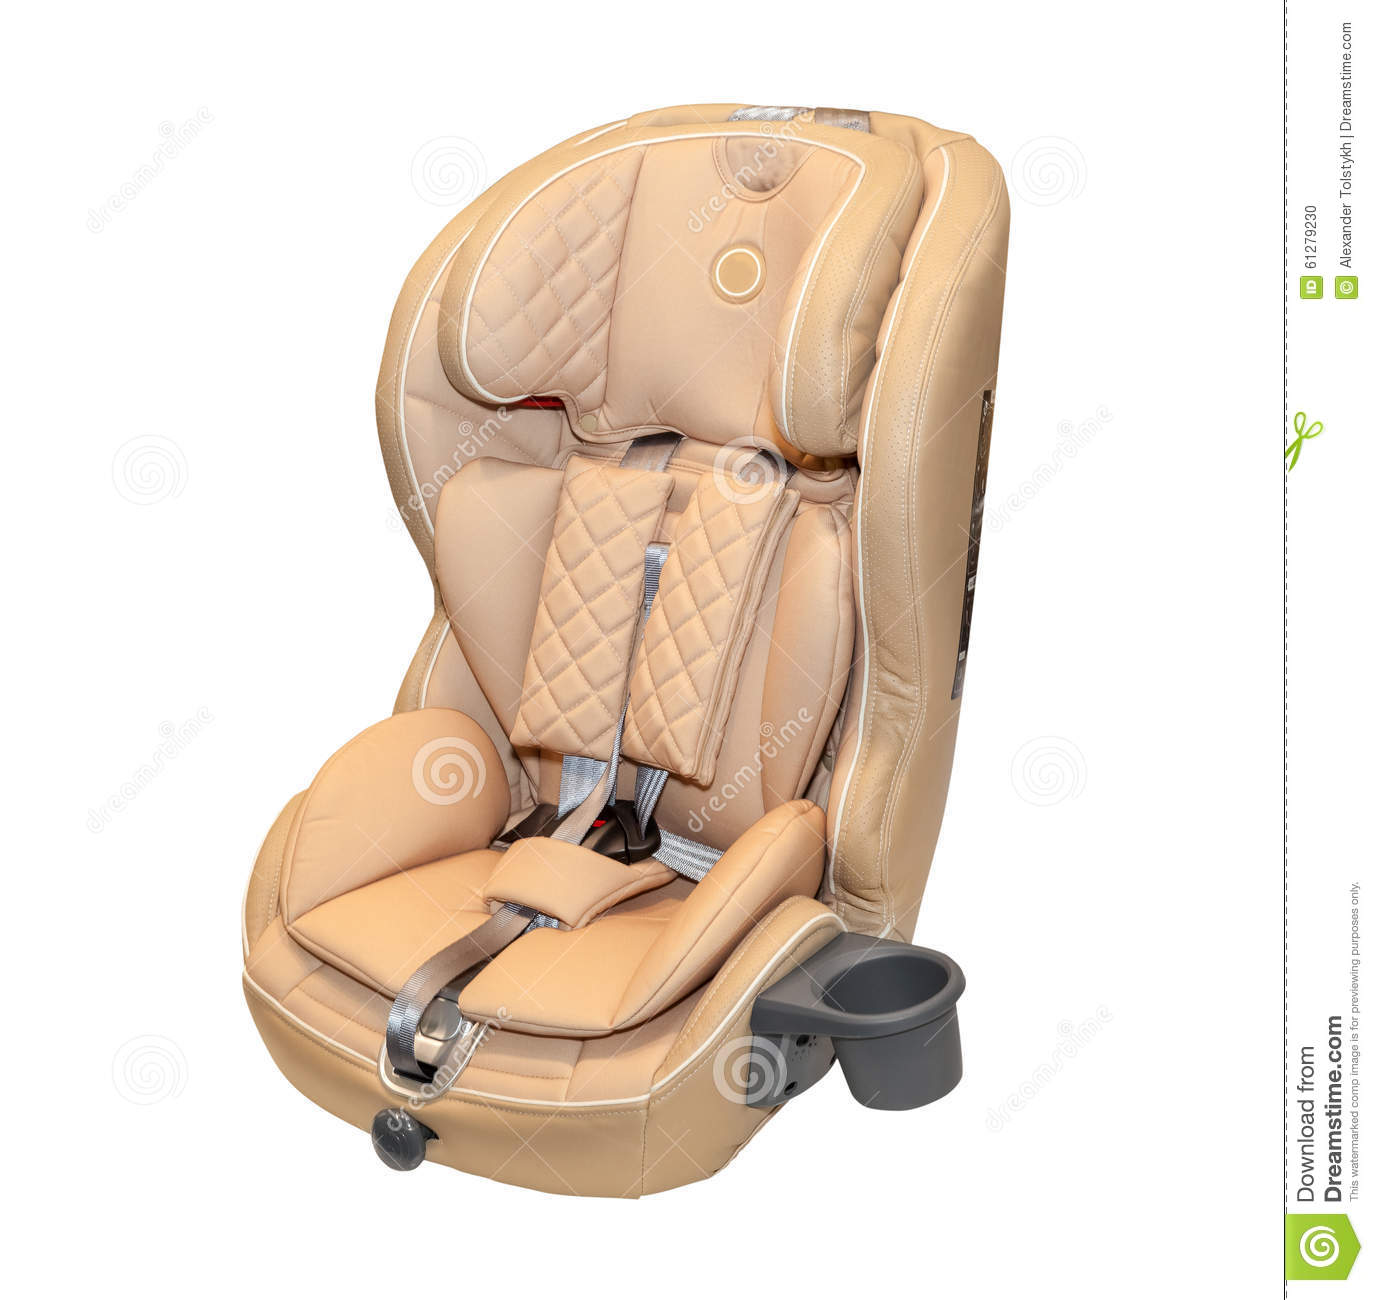 beige leather baby auto car seat isolated stock photo image 61279230. Black Bedroom Furniture Sets. Home Design Ideas